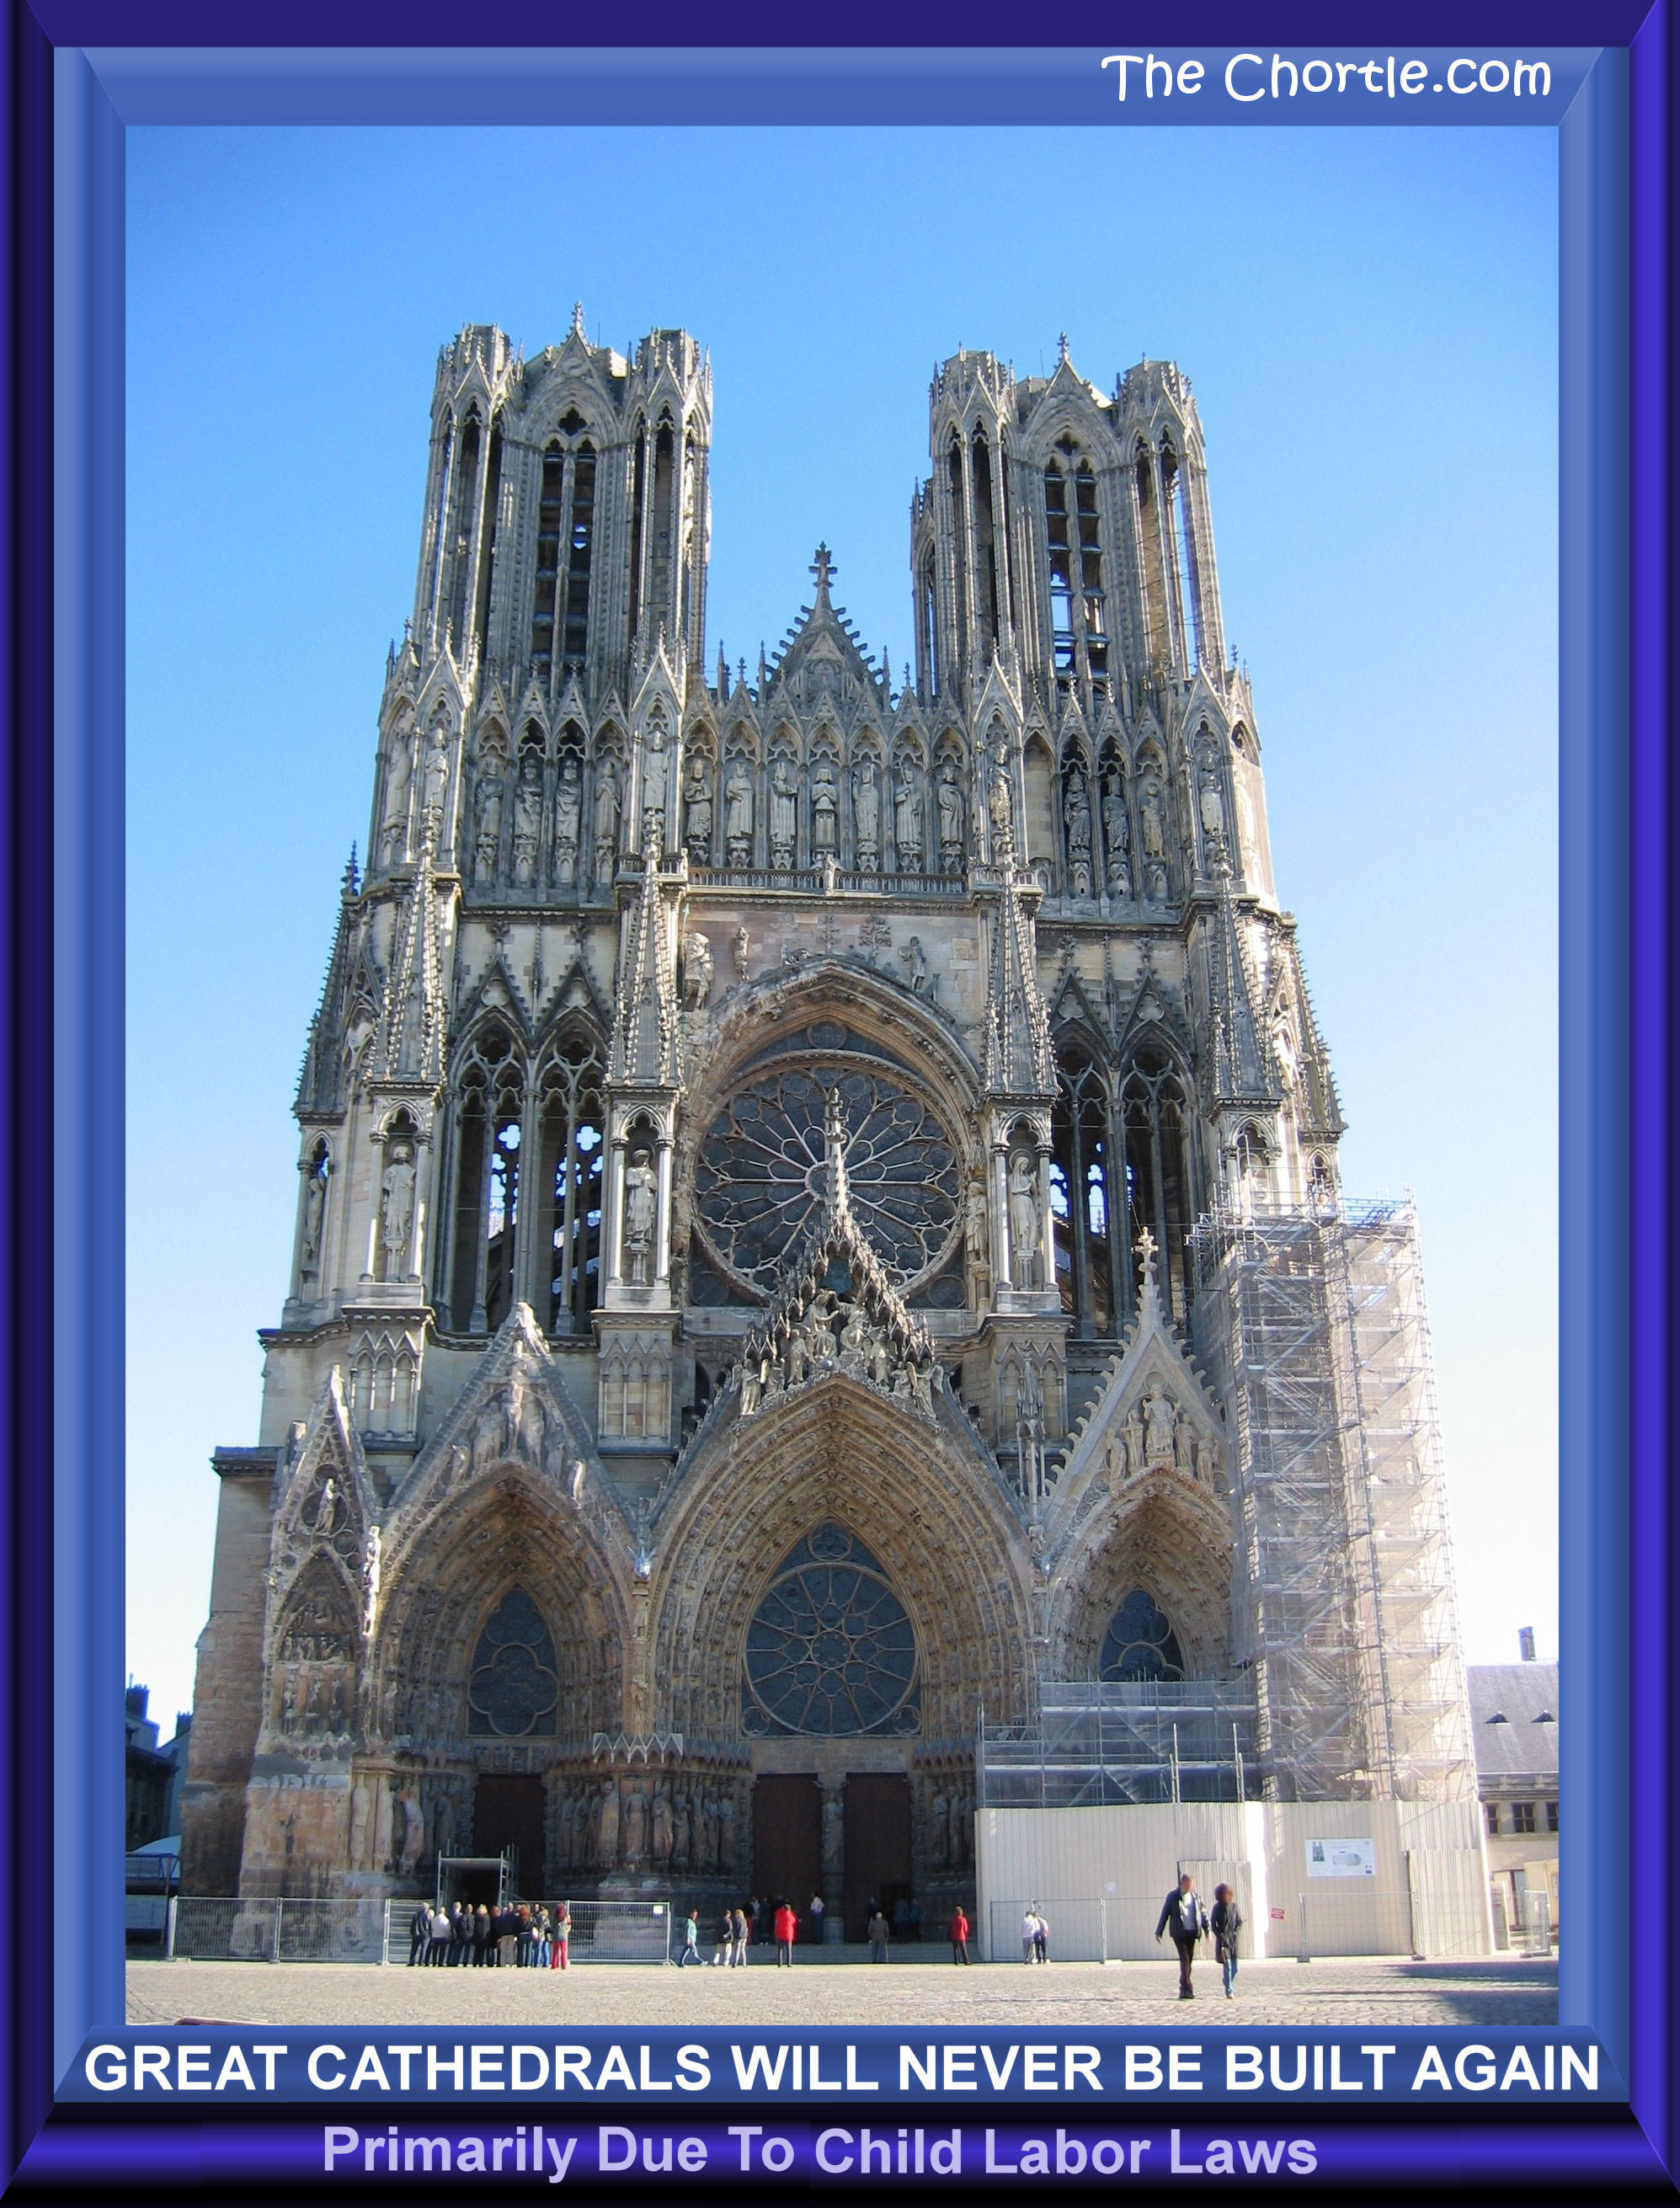 http://thechortle.com/HaHa3/HaHa0288-Cathedral.jpg